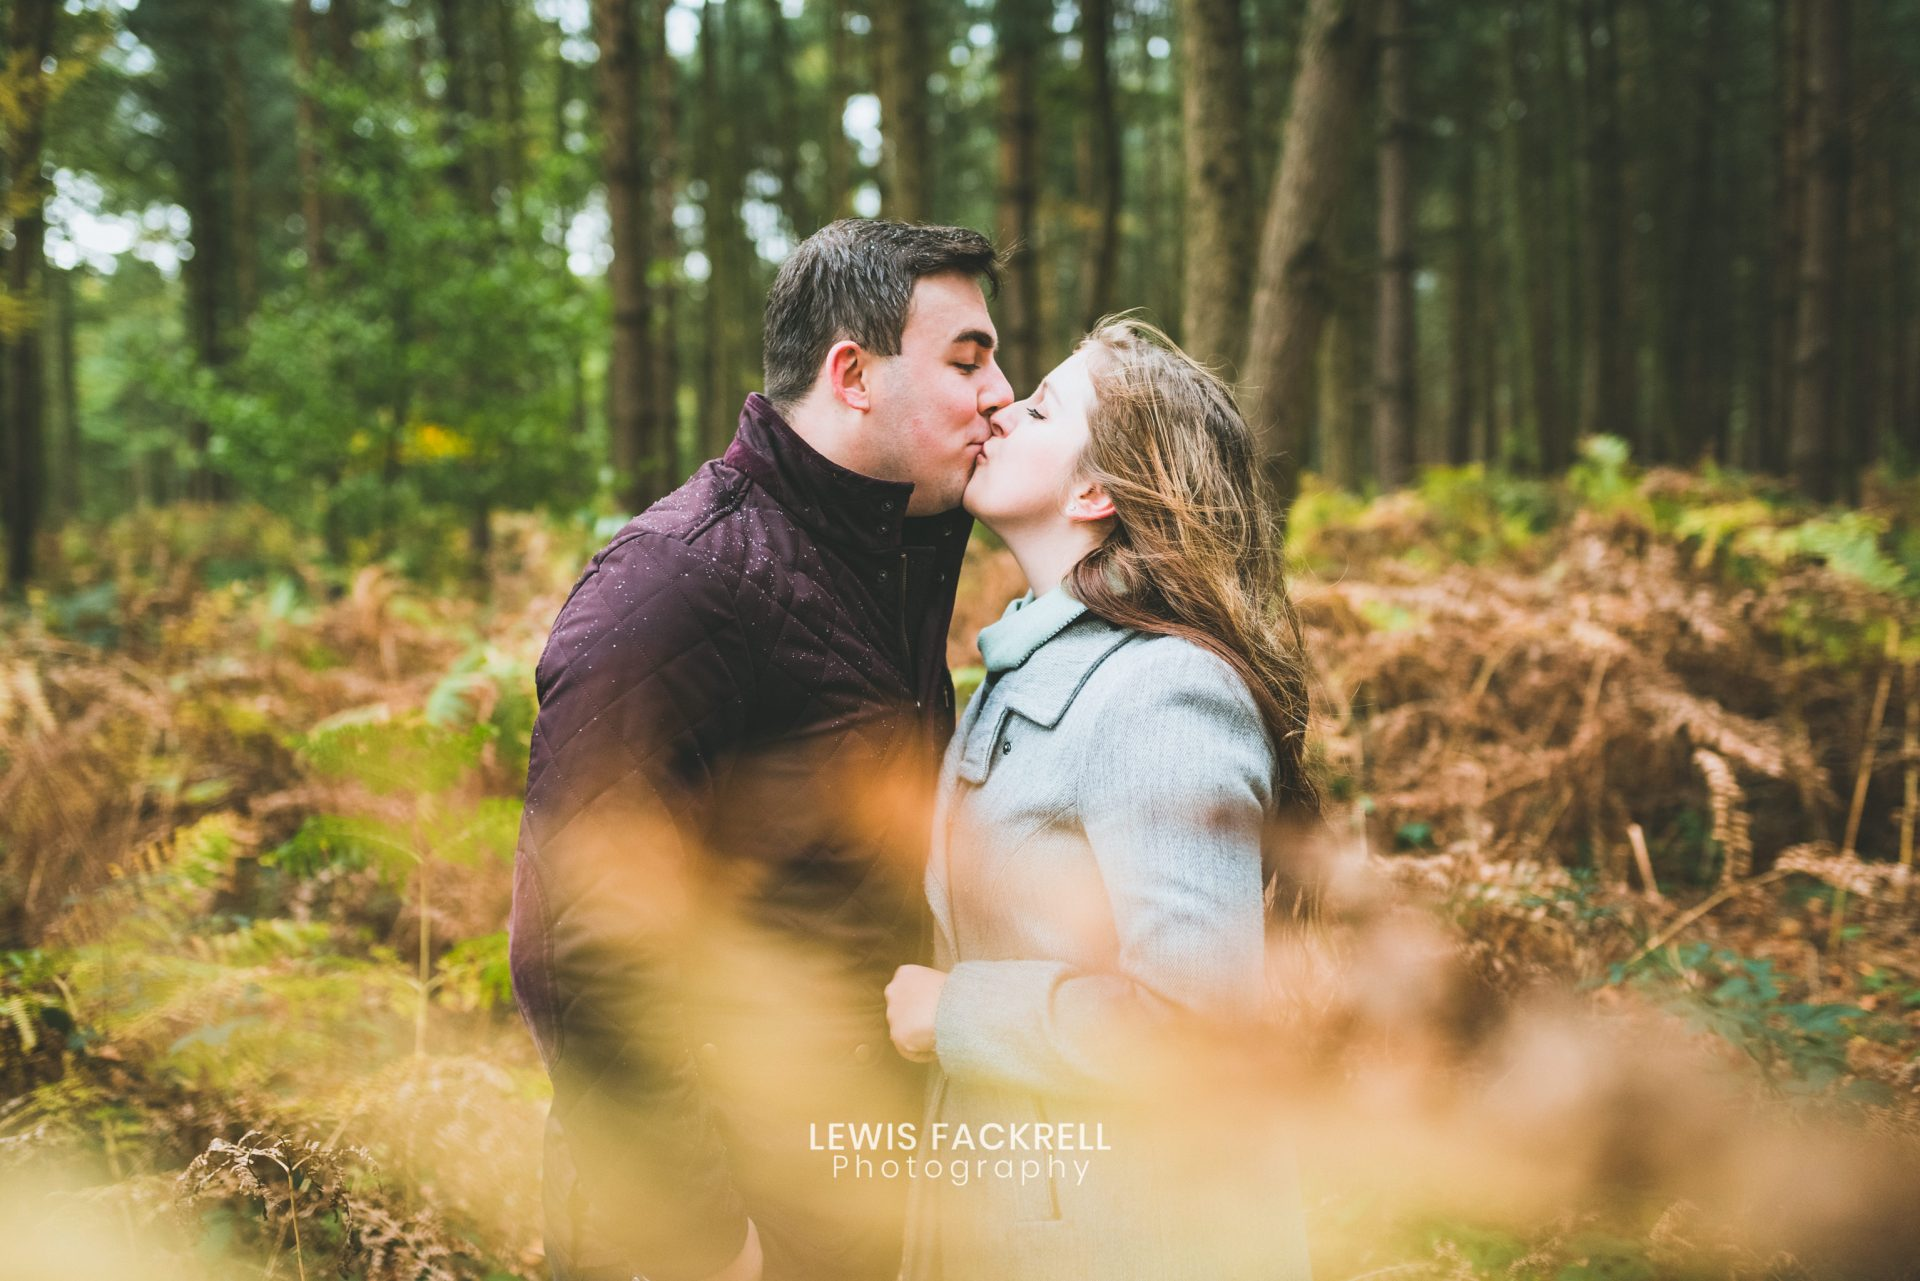 Stafford pre-wedding photography in the woods